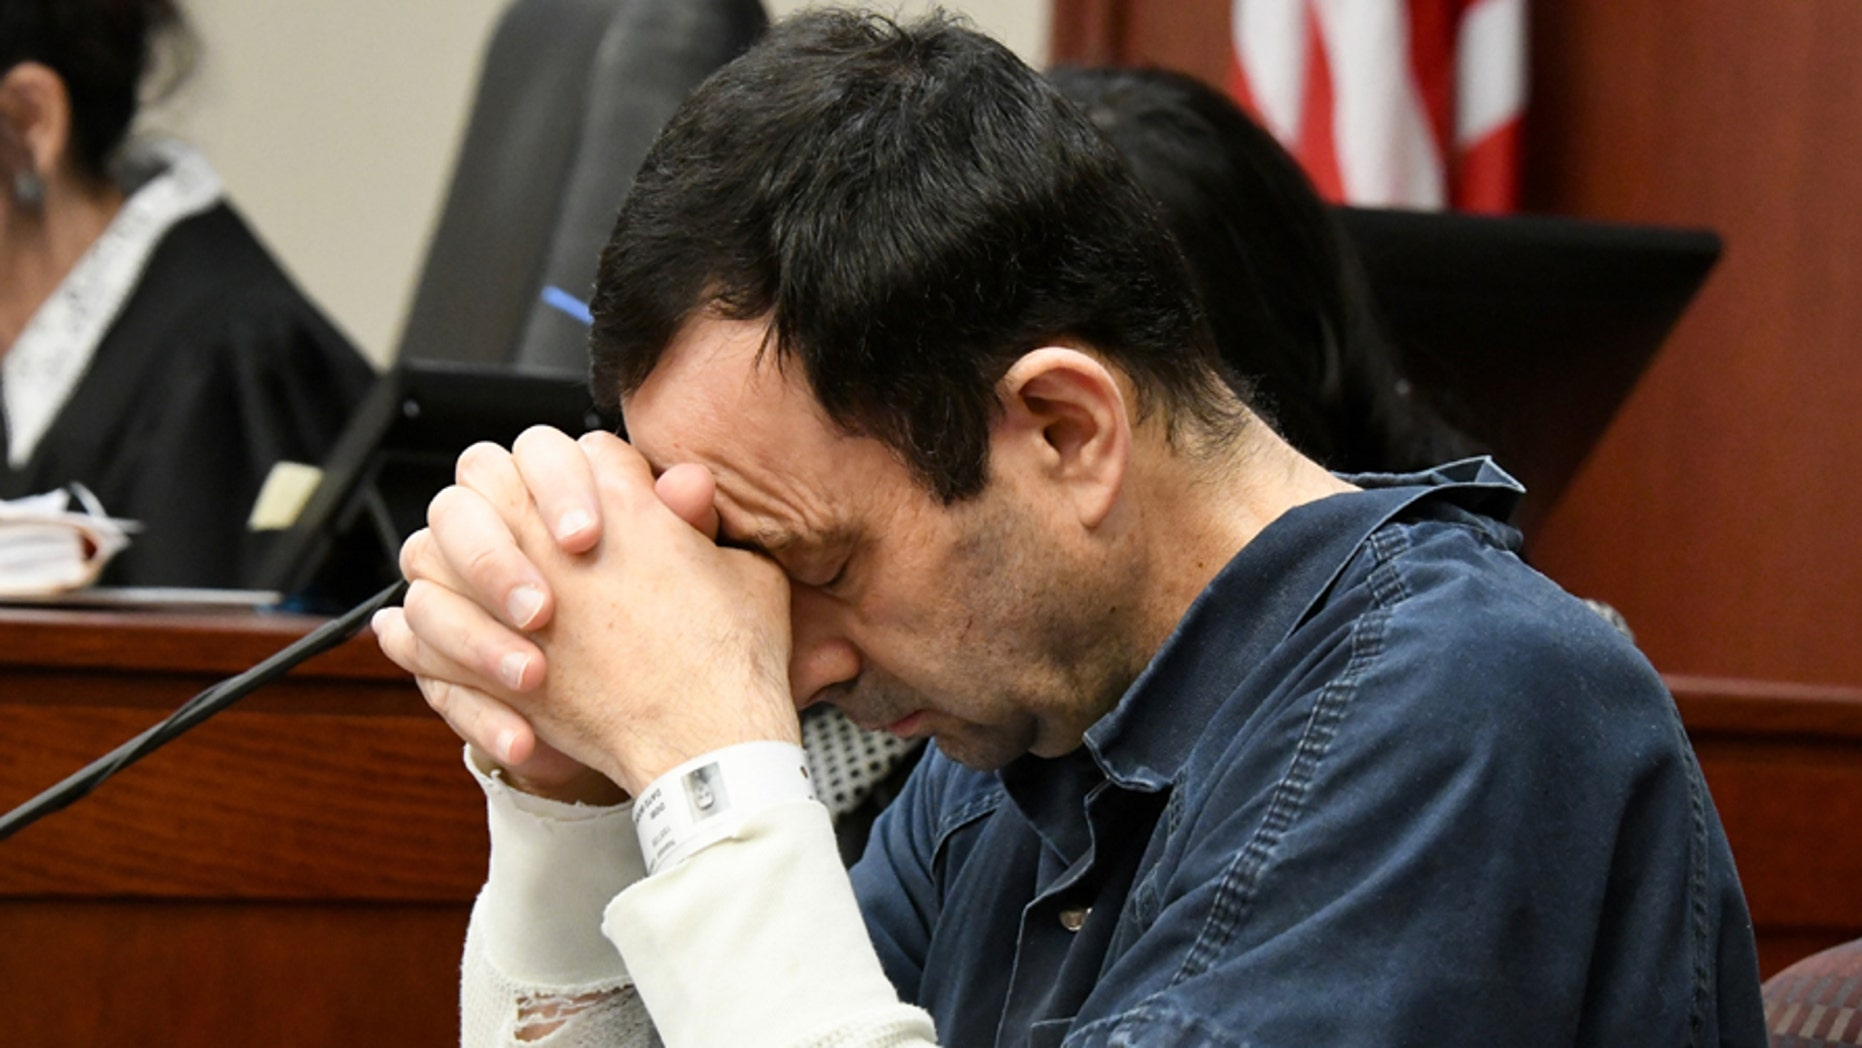 """A victim makes her """"impact statement"""" to Larry Nassar during a sentencing hearing as he puts his head down in front of Judge Rosemarie Aquilina in district court on Tuesday, Jan. 16, 2018, in Lansing, Mich. Nassar has pleaded guilty to molesting females with his hands at his Michigan State University office, his home and a Lansing-area gymnastics club,. (Dale G. Young/Detroit News via AP)"""